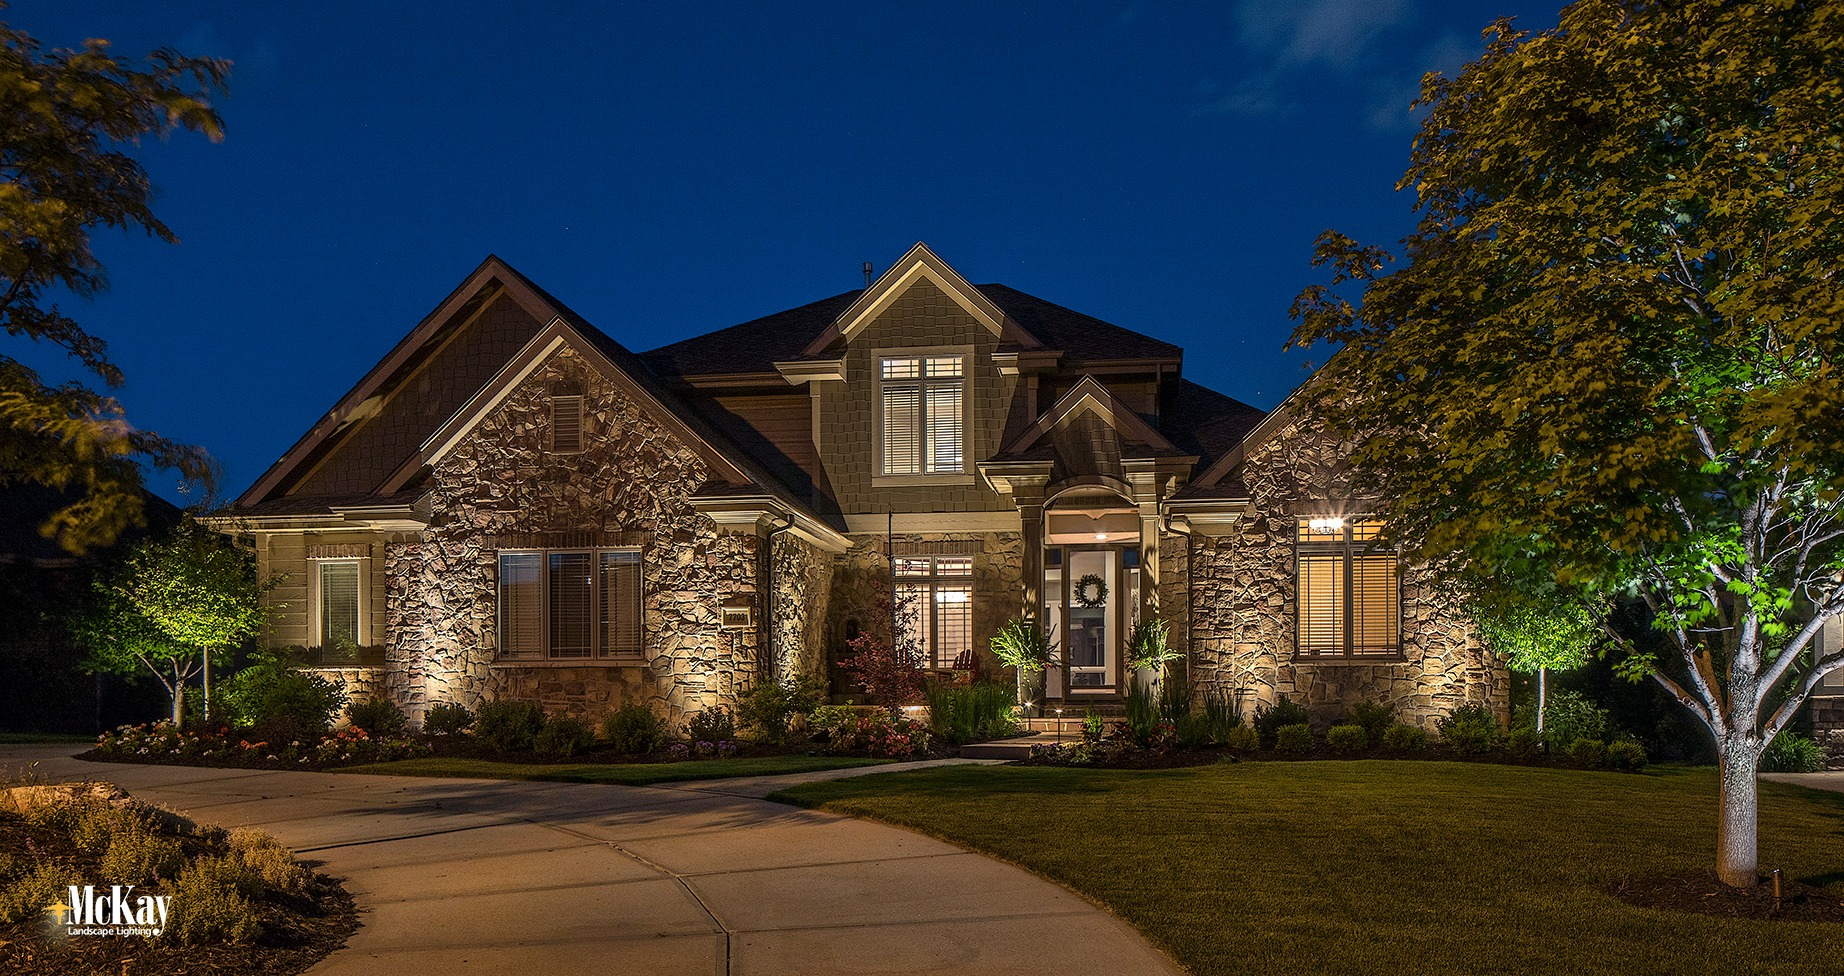 Outdoor Landscape Lighting Ideas & Inspiration